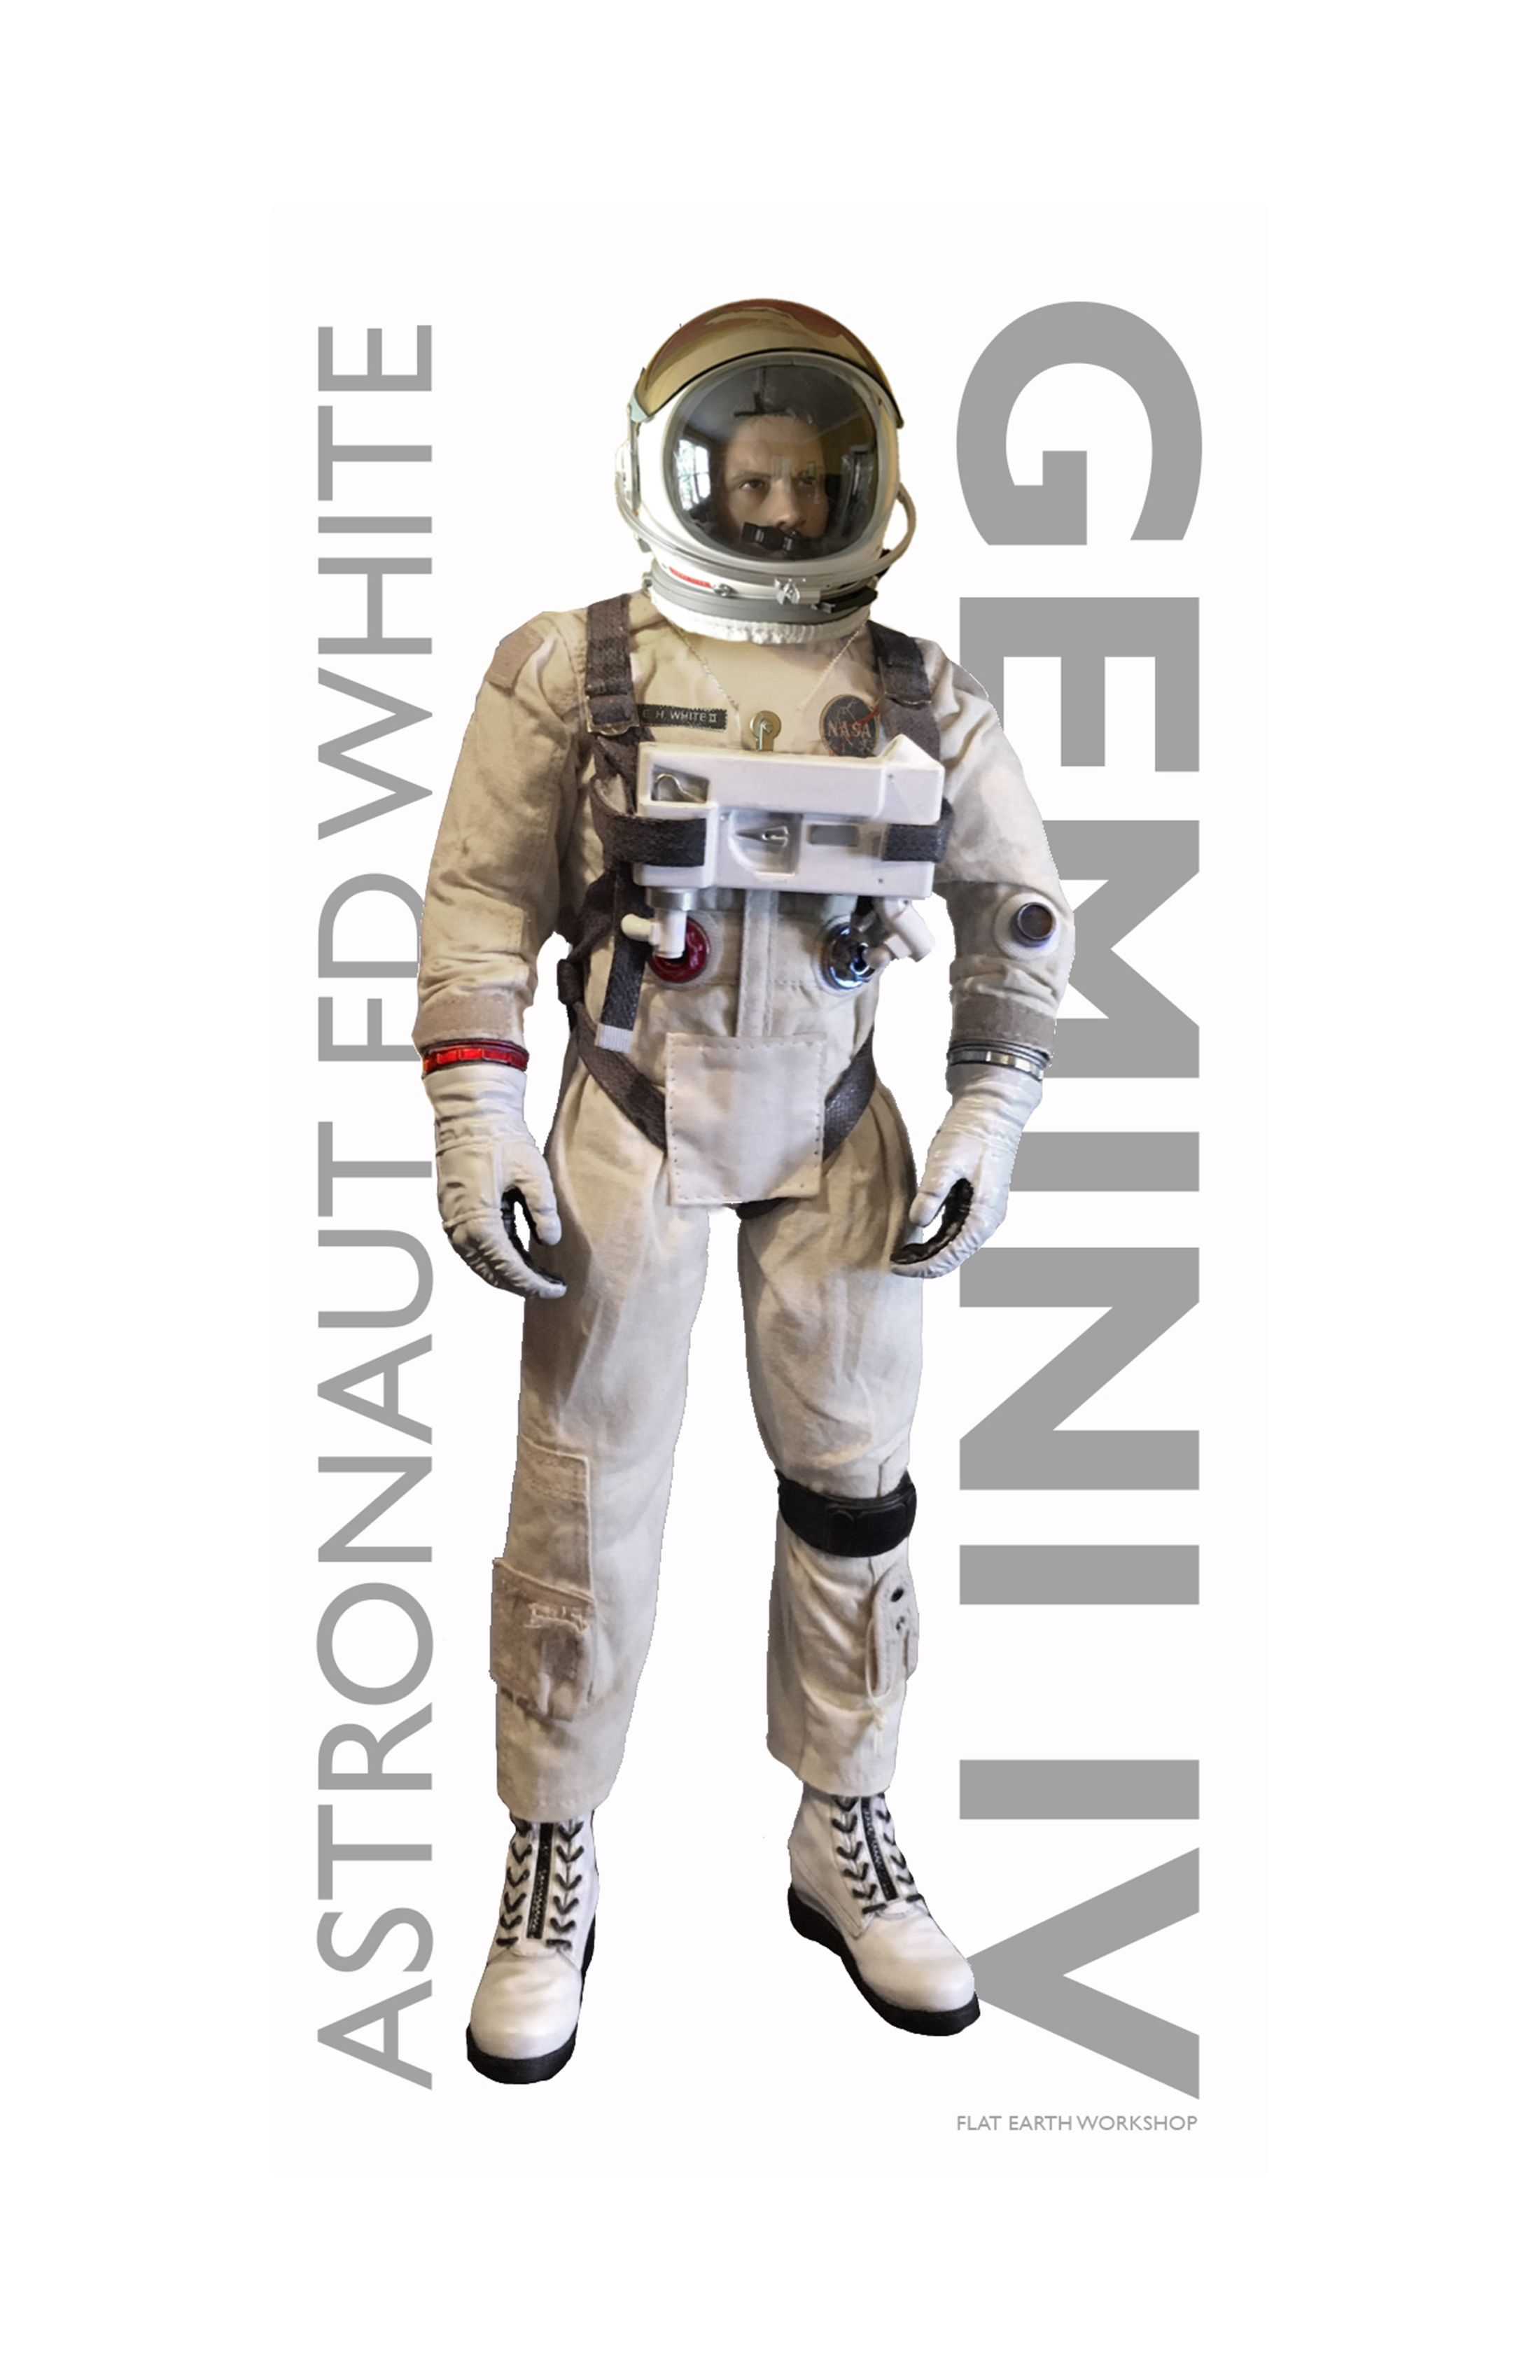 medium resolution of ed white 1 6 figure from gemini iv eva mission created by flat earth workshop now in the collection of adam savage myth busters tested